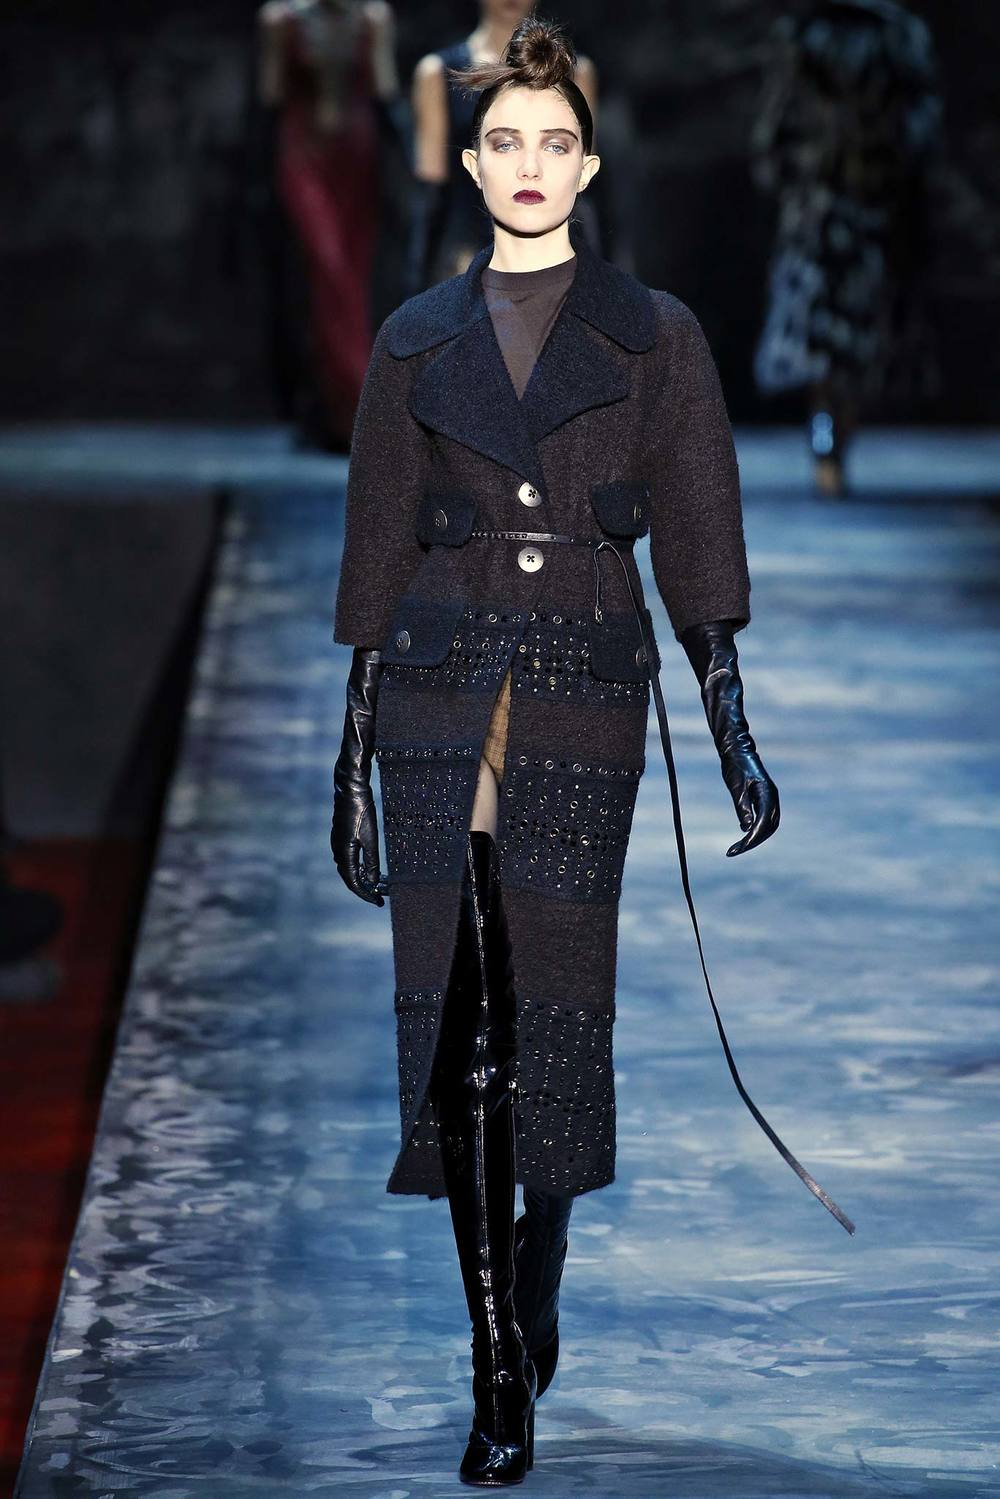 Featuring leash/belt, patent boots, and elbow- or opera-length gloves.